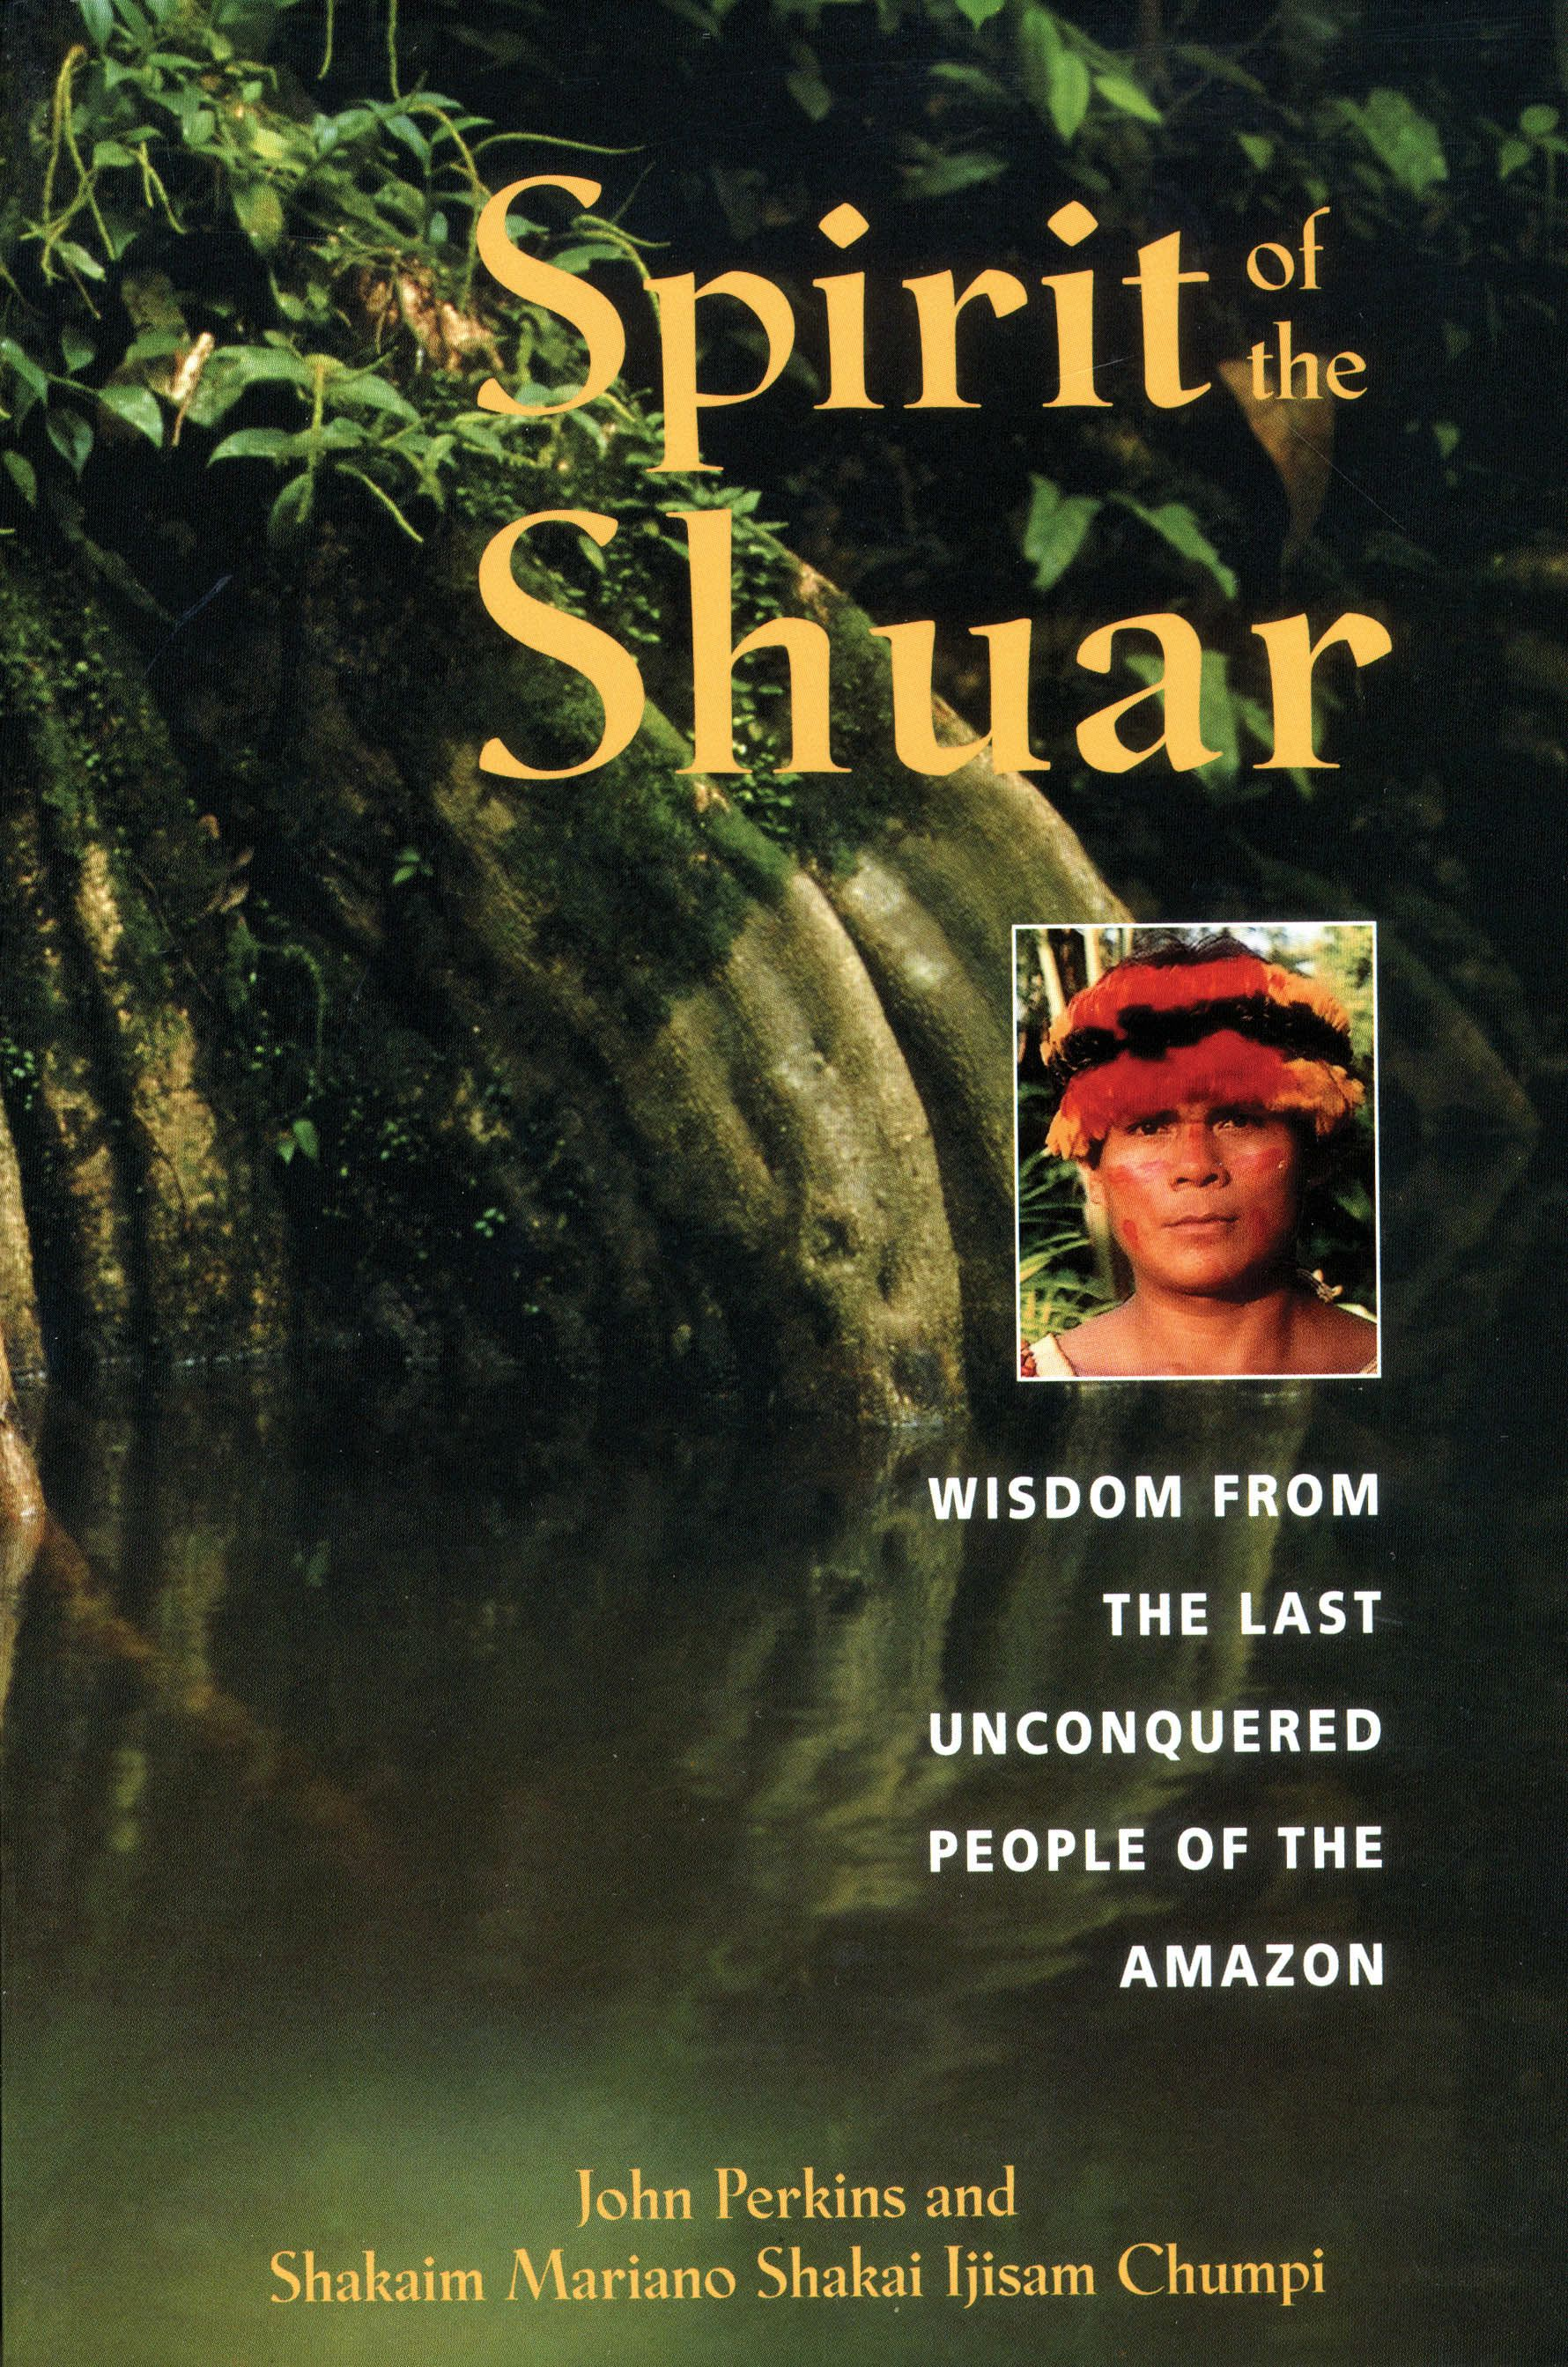 Spirit of the shuar 9780892818655 hr